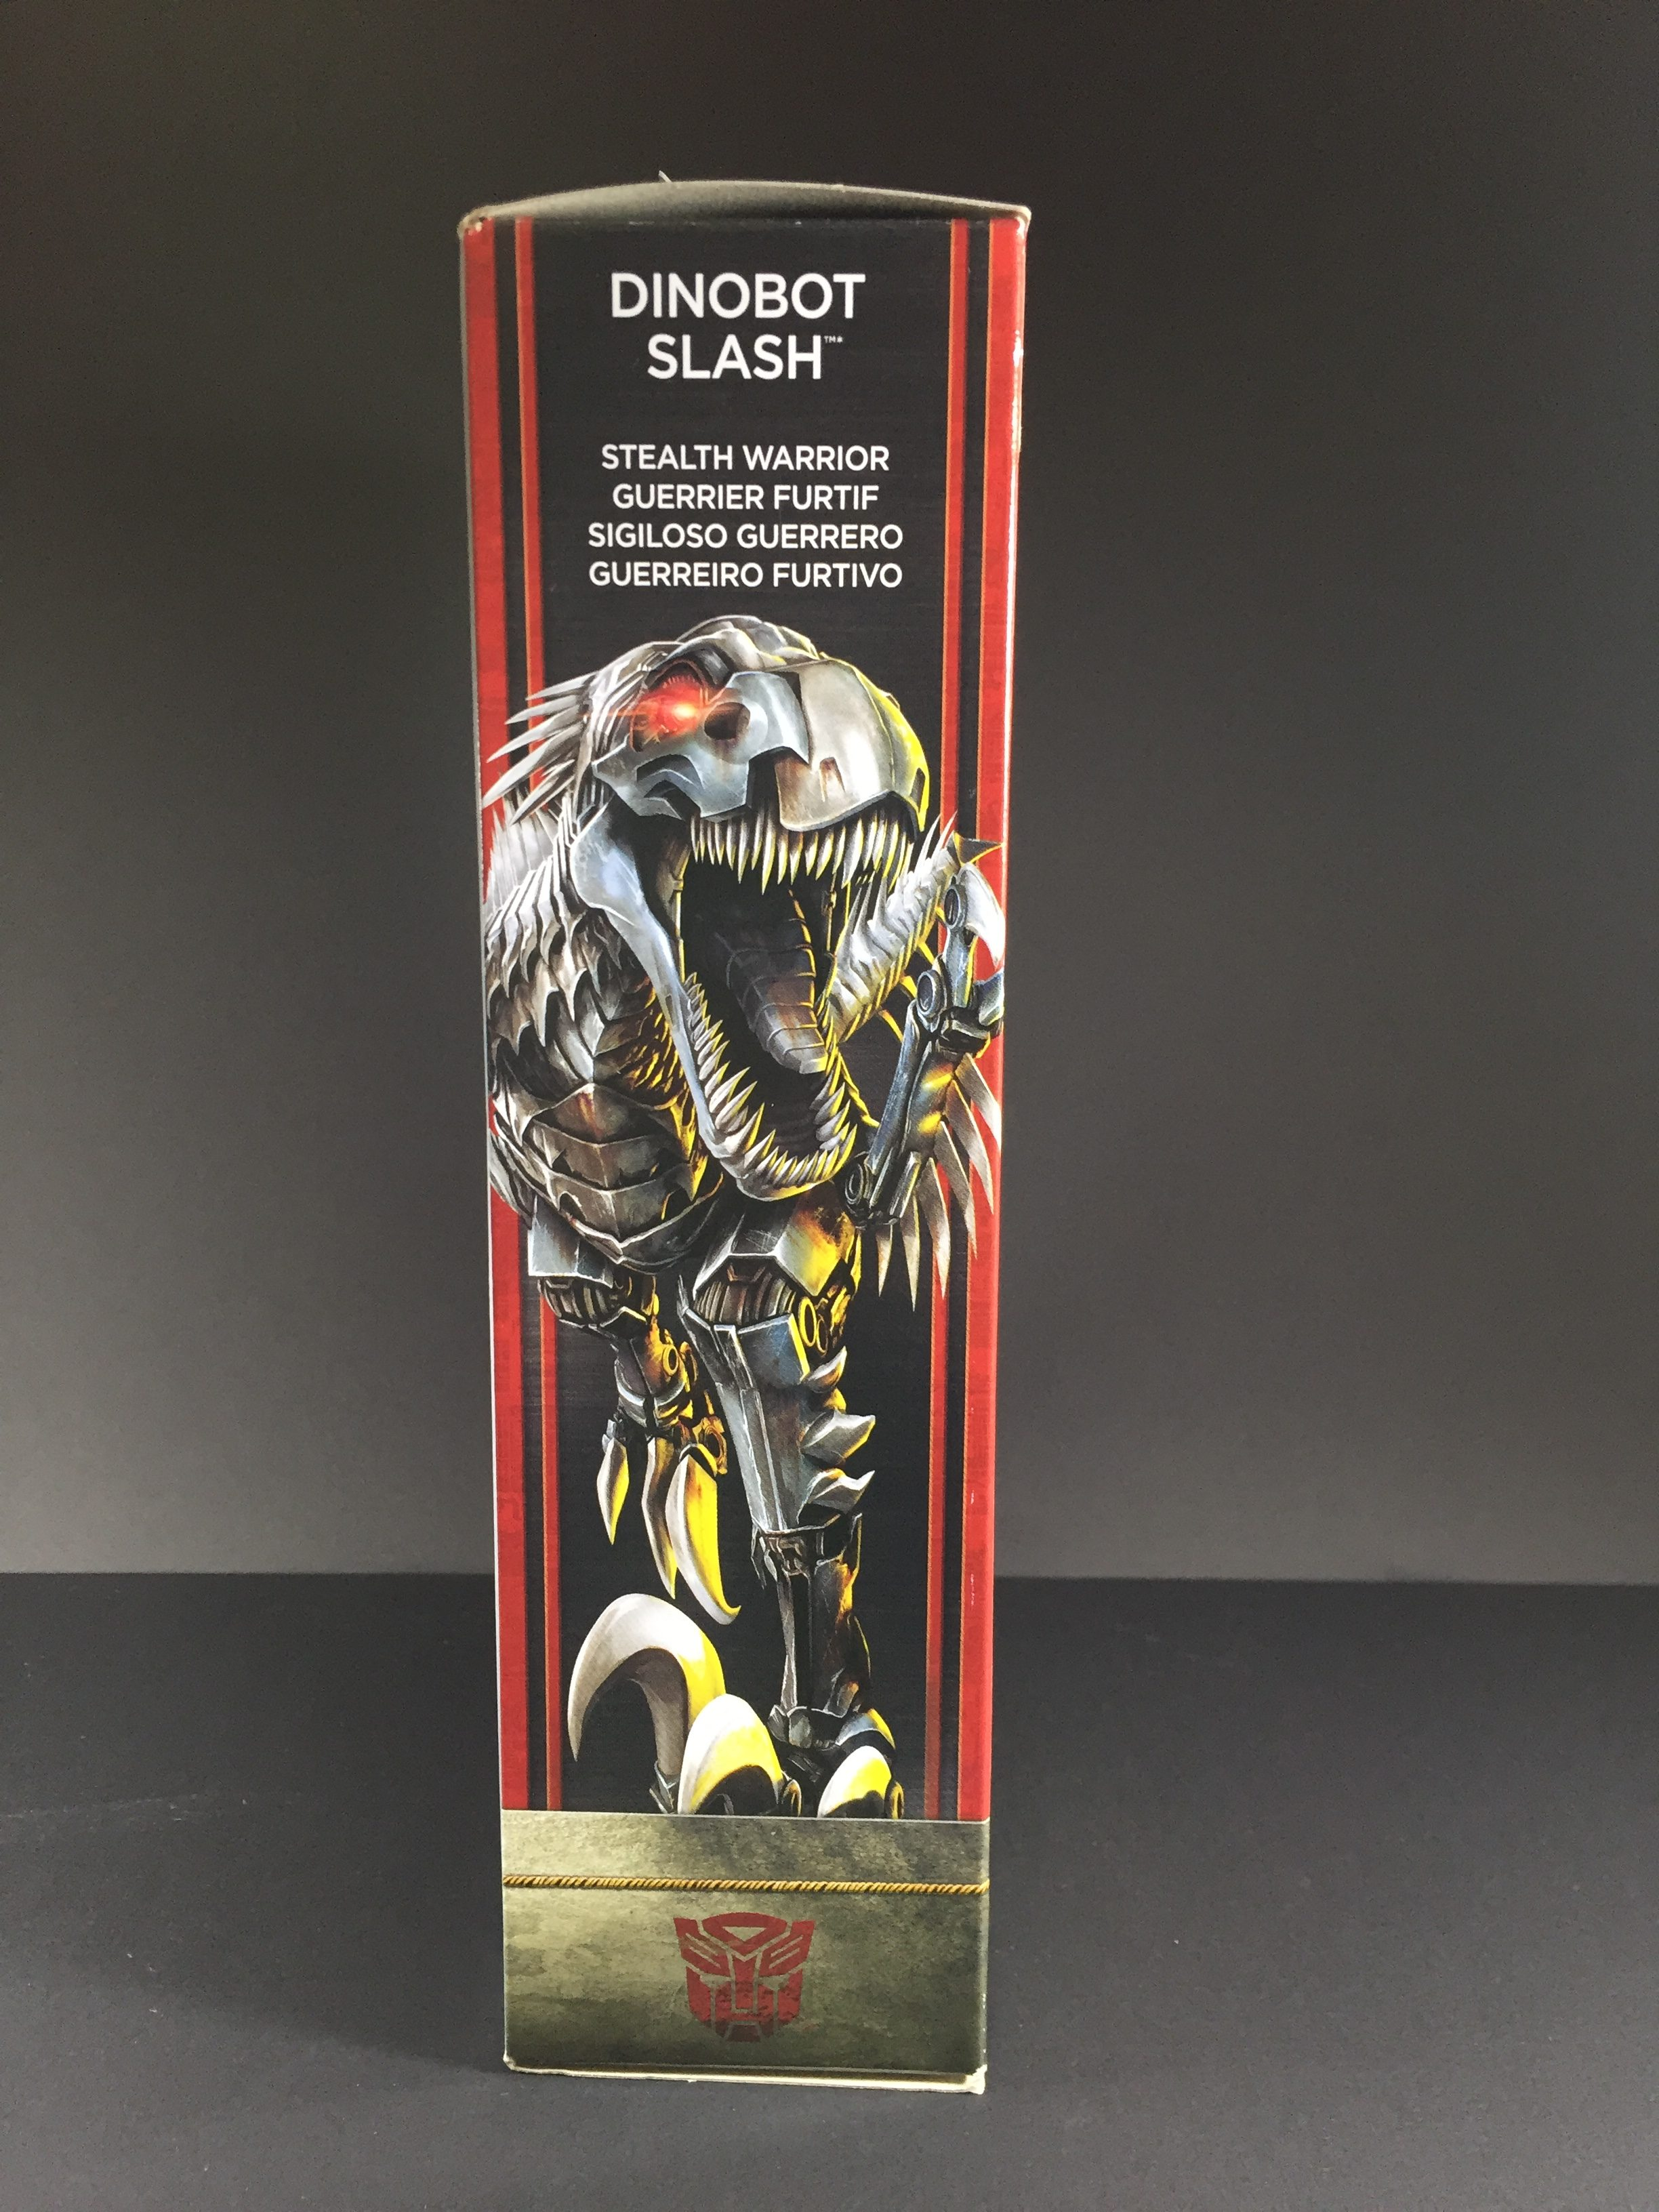 Slash, packaging. (Transformers: The Last Knight)